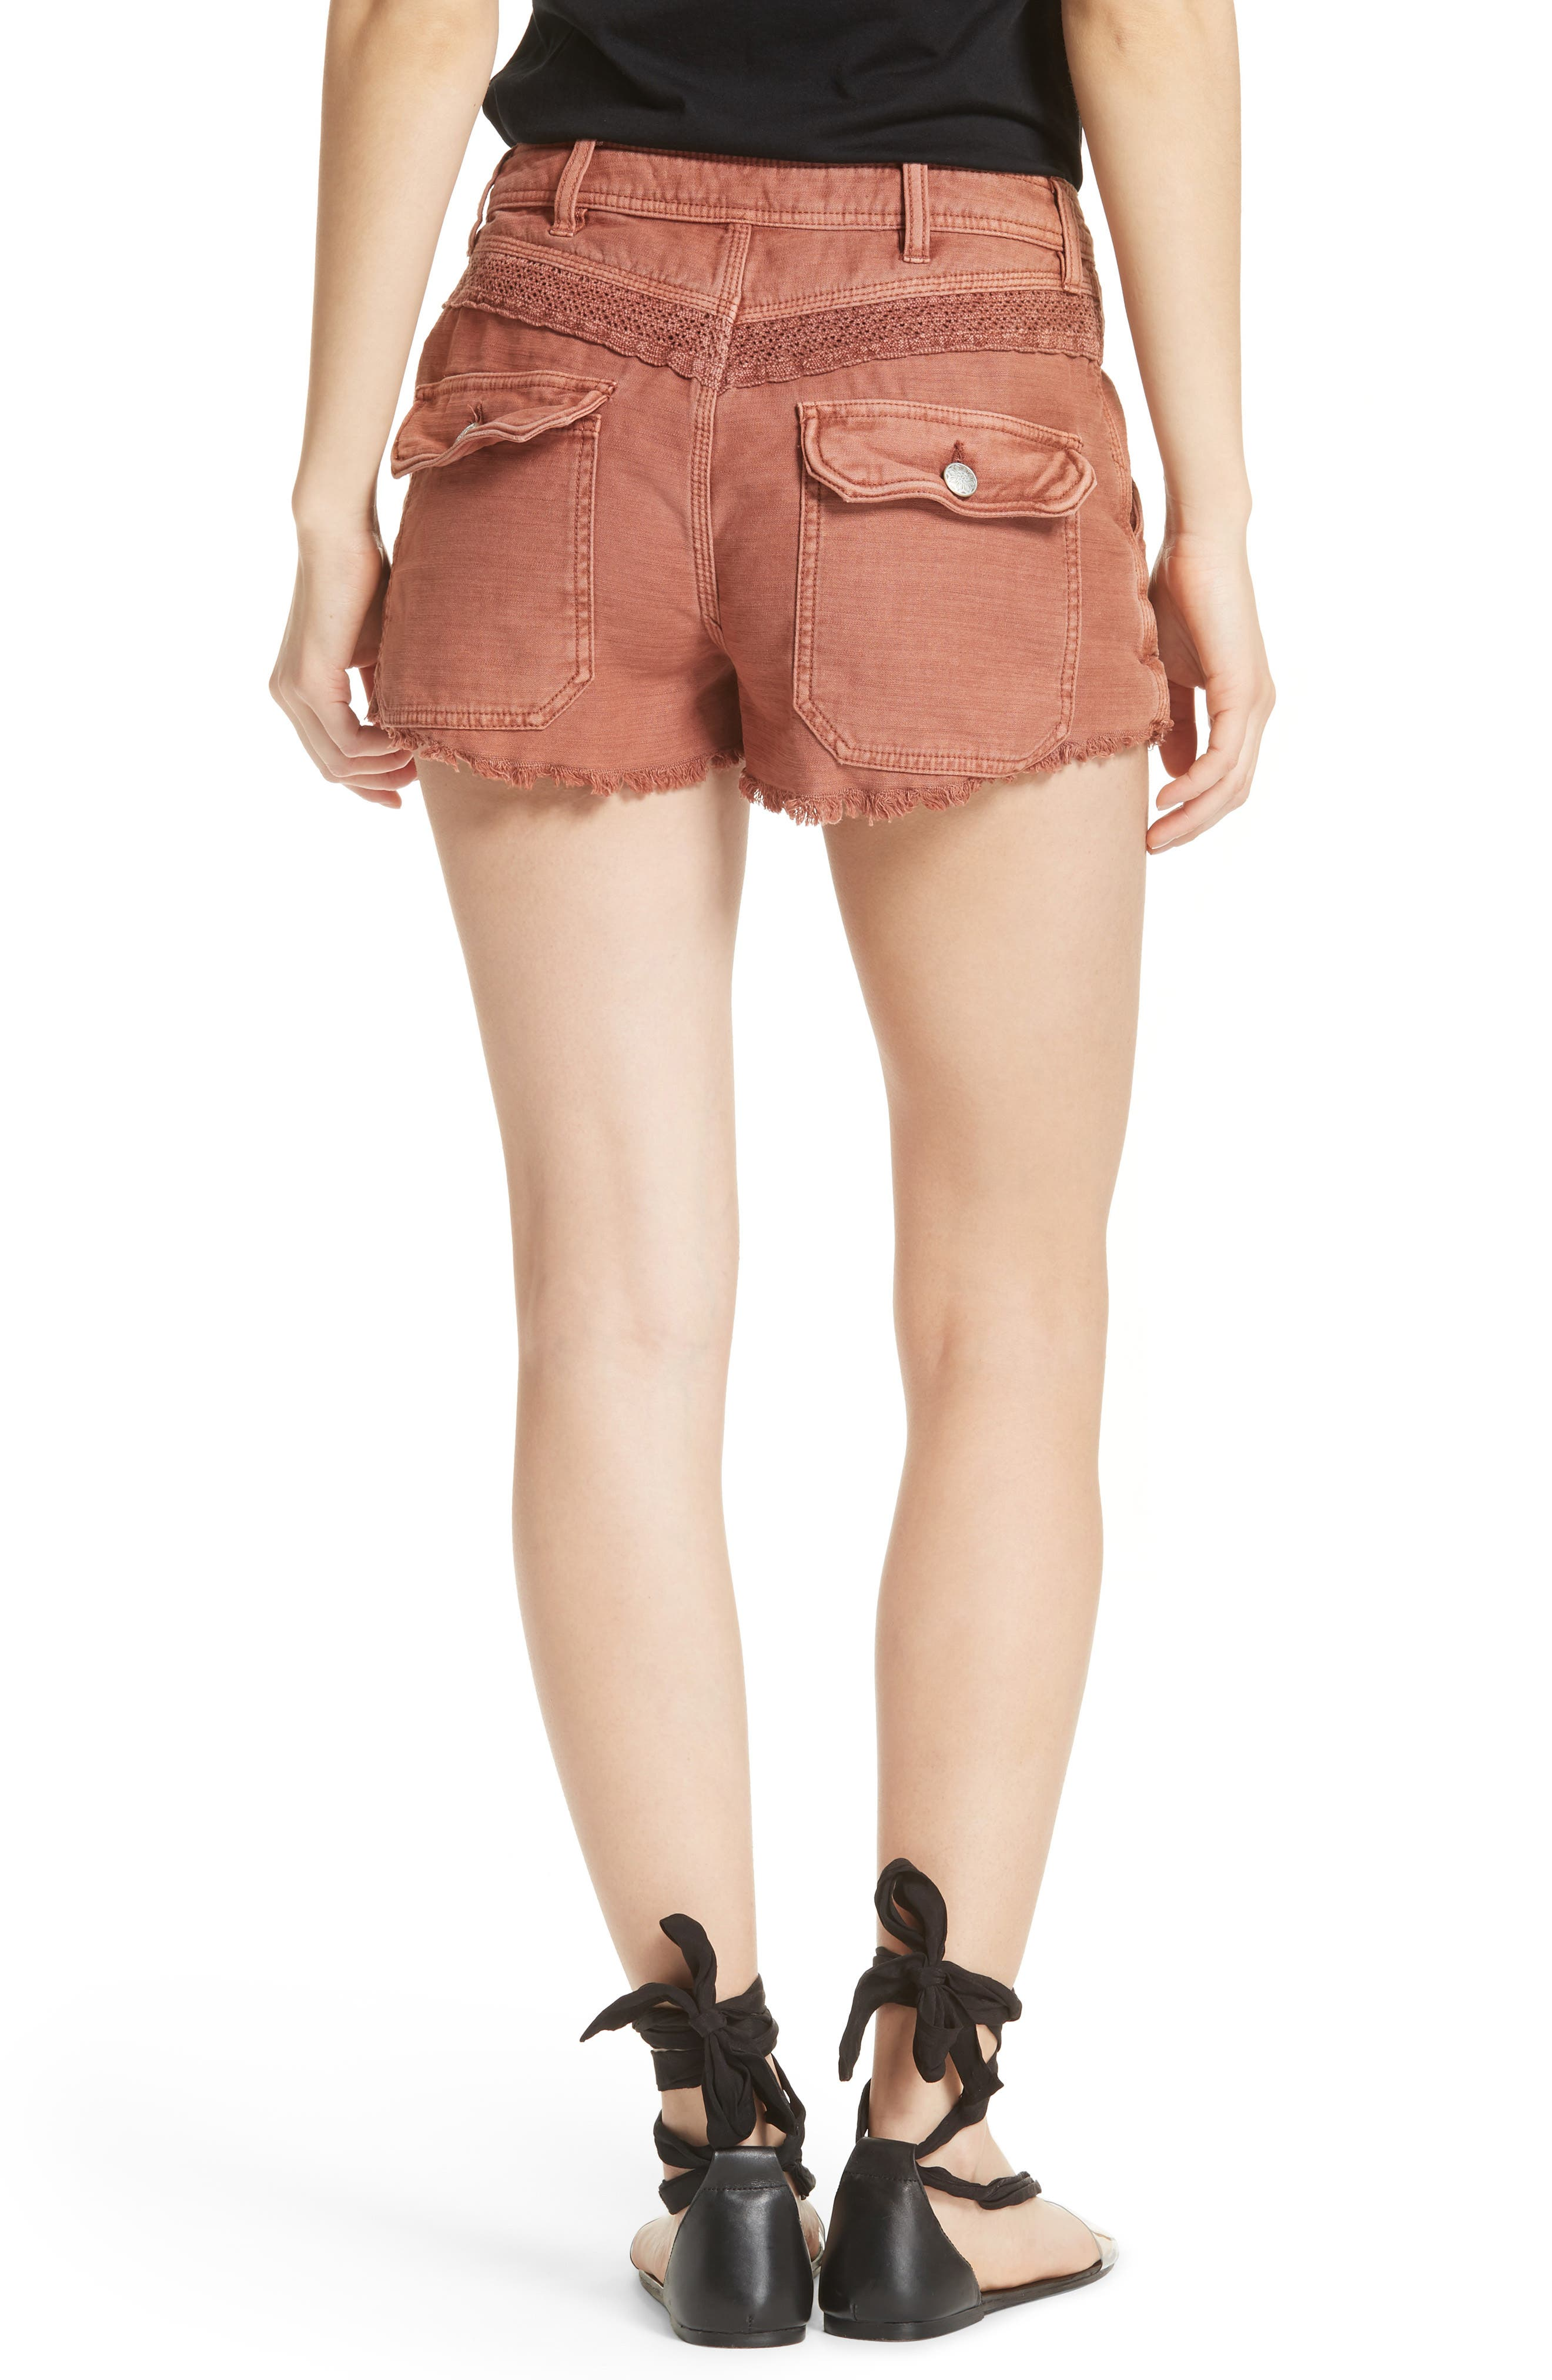 Great Expectations Lace Cutout Shorts,                             Alternate thumbnail 2, color,                             Peach